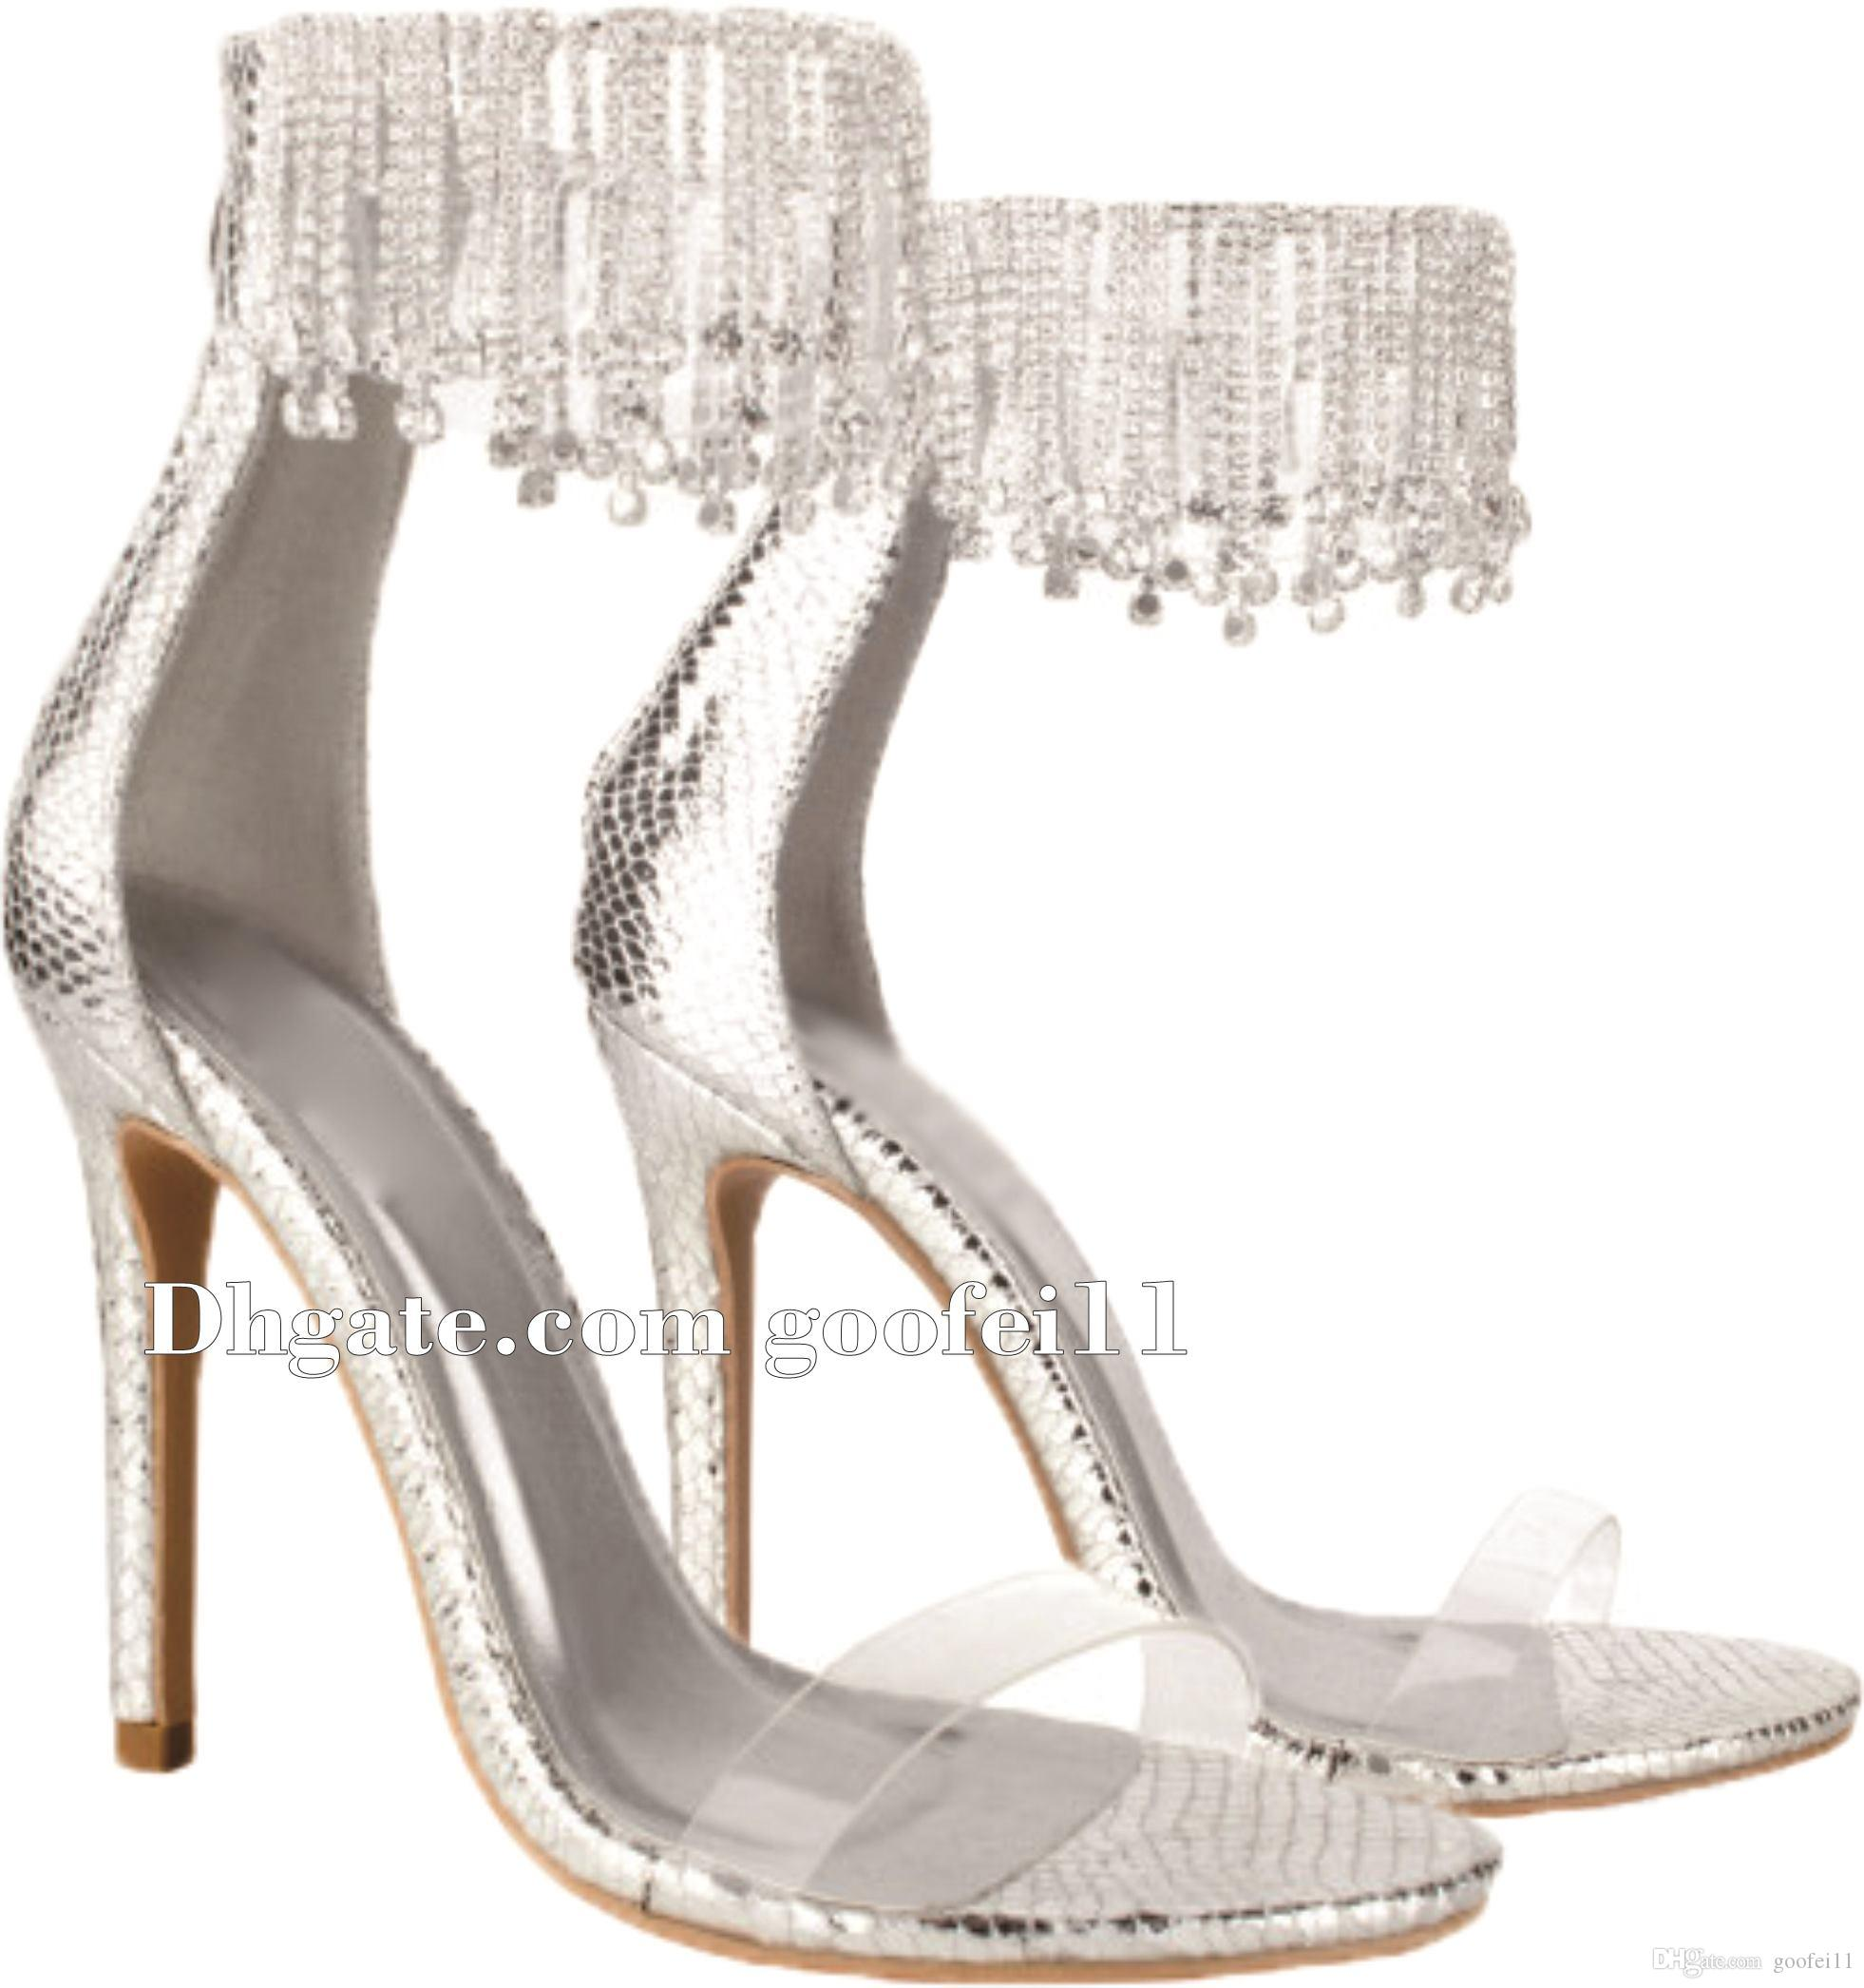 41431243d78 Women Luxurious Bling Bling Fringe Style Rhinestone Gladiator Sandals Gold  Silver Crystal Super High Heel Sandals Wedding Shoes Ladies Shoes Red Shoes  From ...